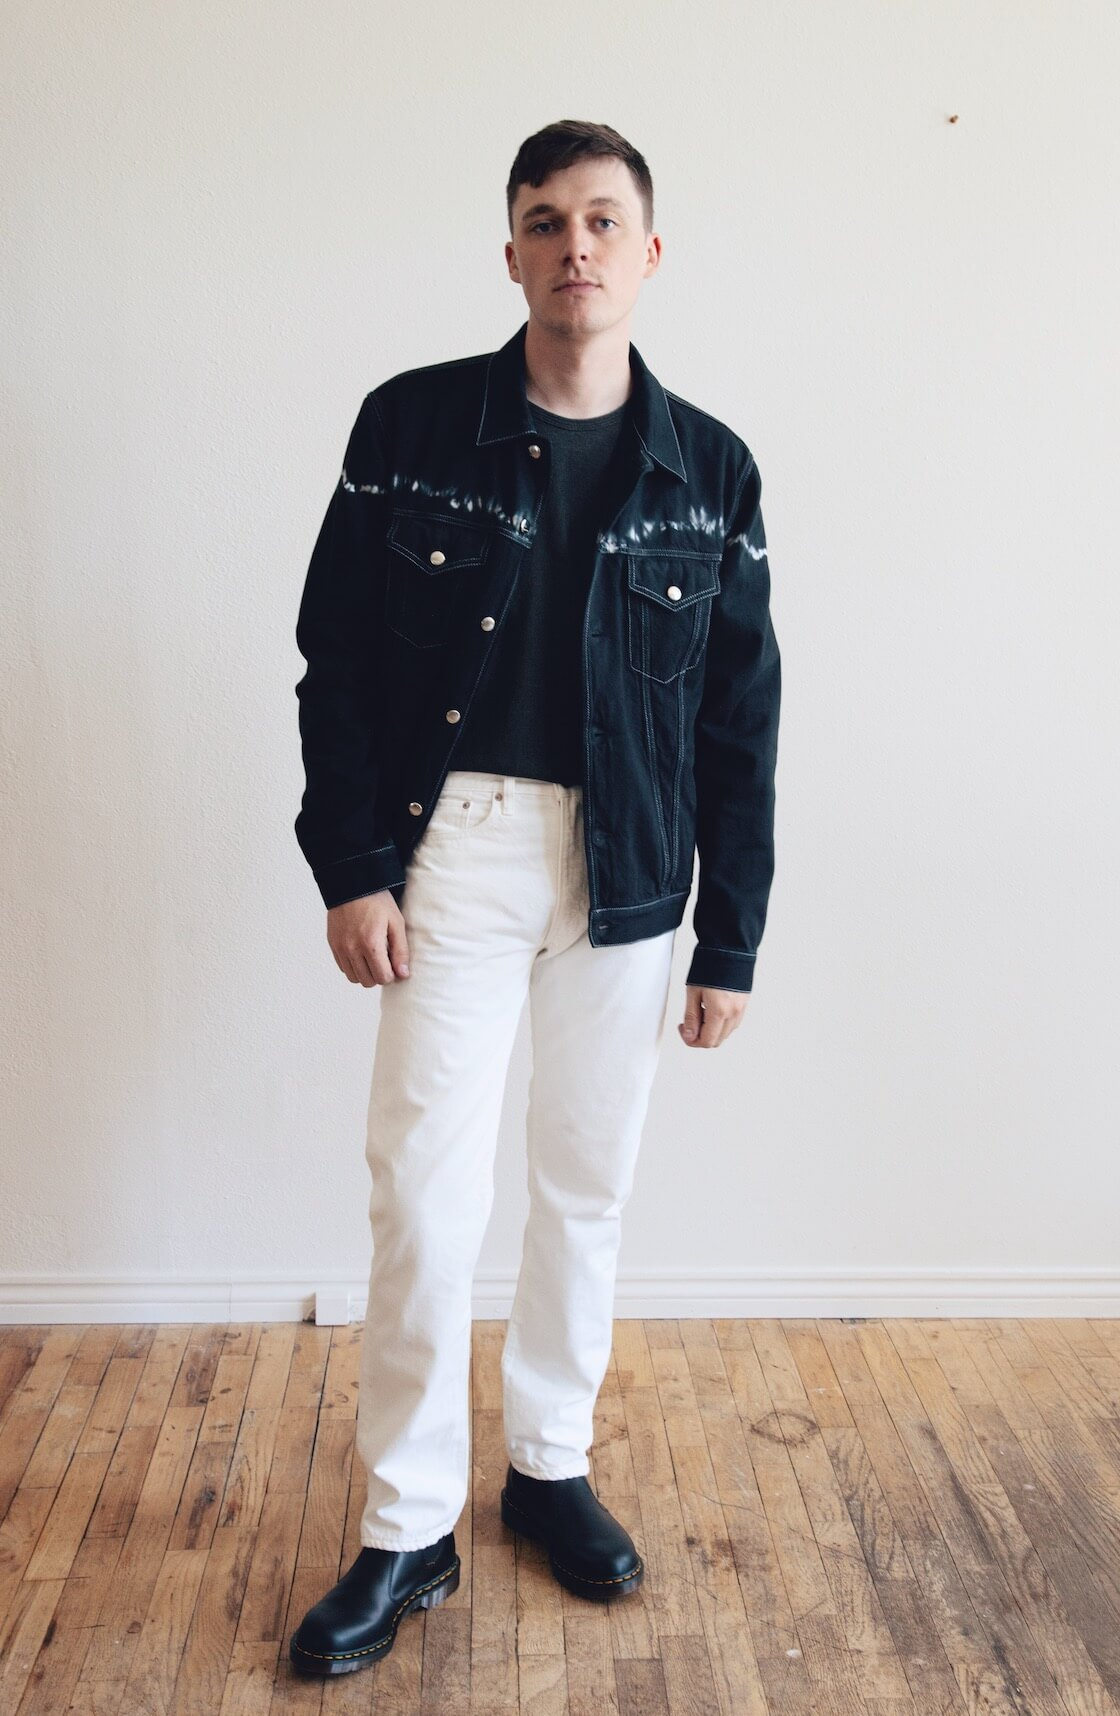 marni denim jacket, lady white co. our t-shirt, orslow 107 ivy denim and dr. martens made in england 2976 boots on body